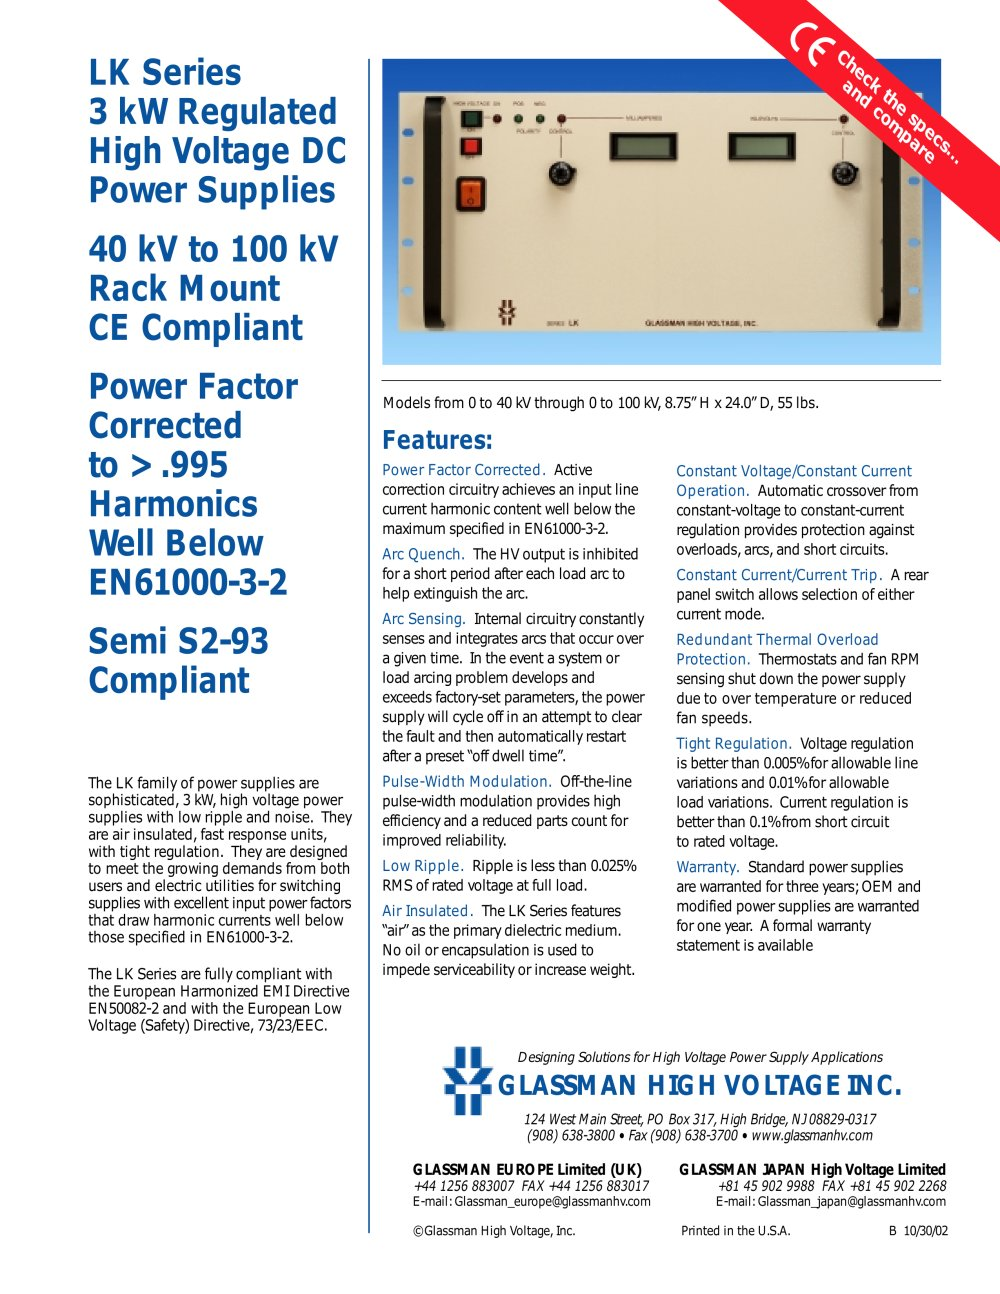 Lk Series 3 Kw Regulated High Voltage Dc Power Supplies Glassman Current Supply 1 4 Pages